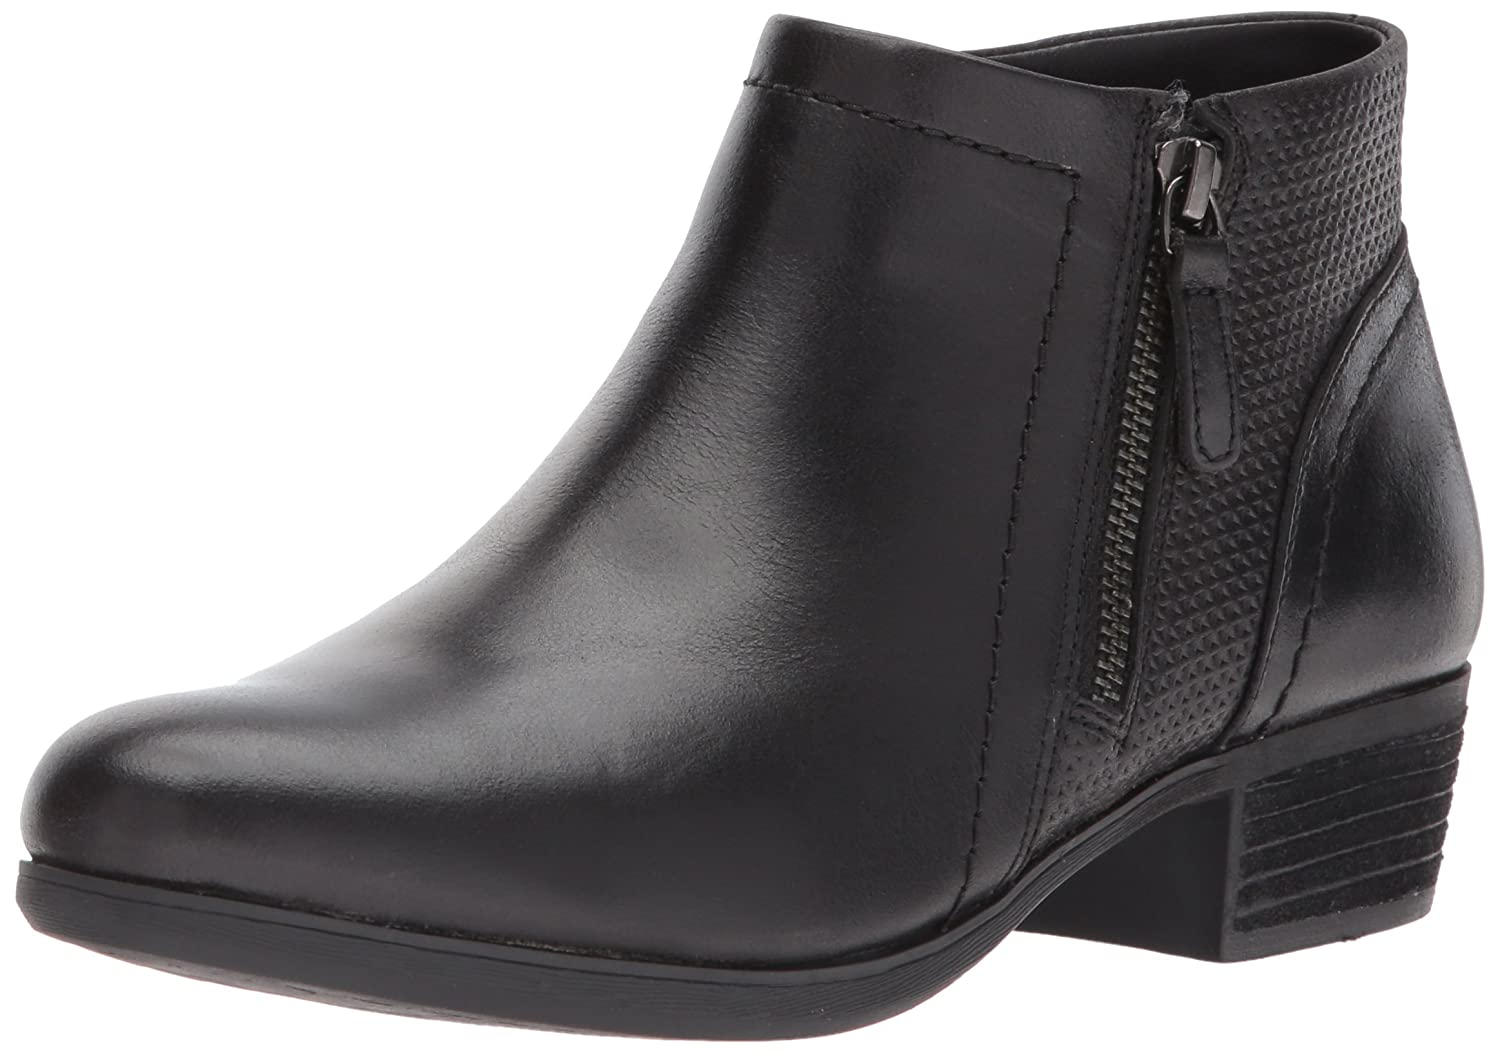 Cobb Hill Women's Oliana Panel Ankle Boot B06X14QL82 9 B(M) US|Black Pull Up Lthr